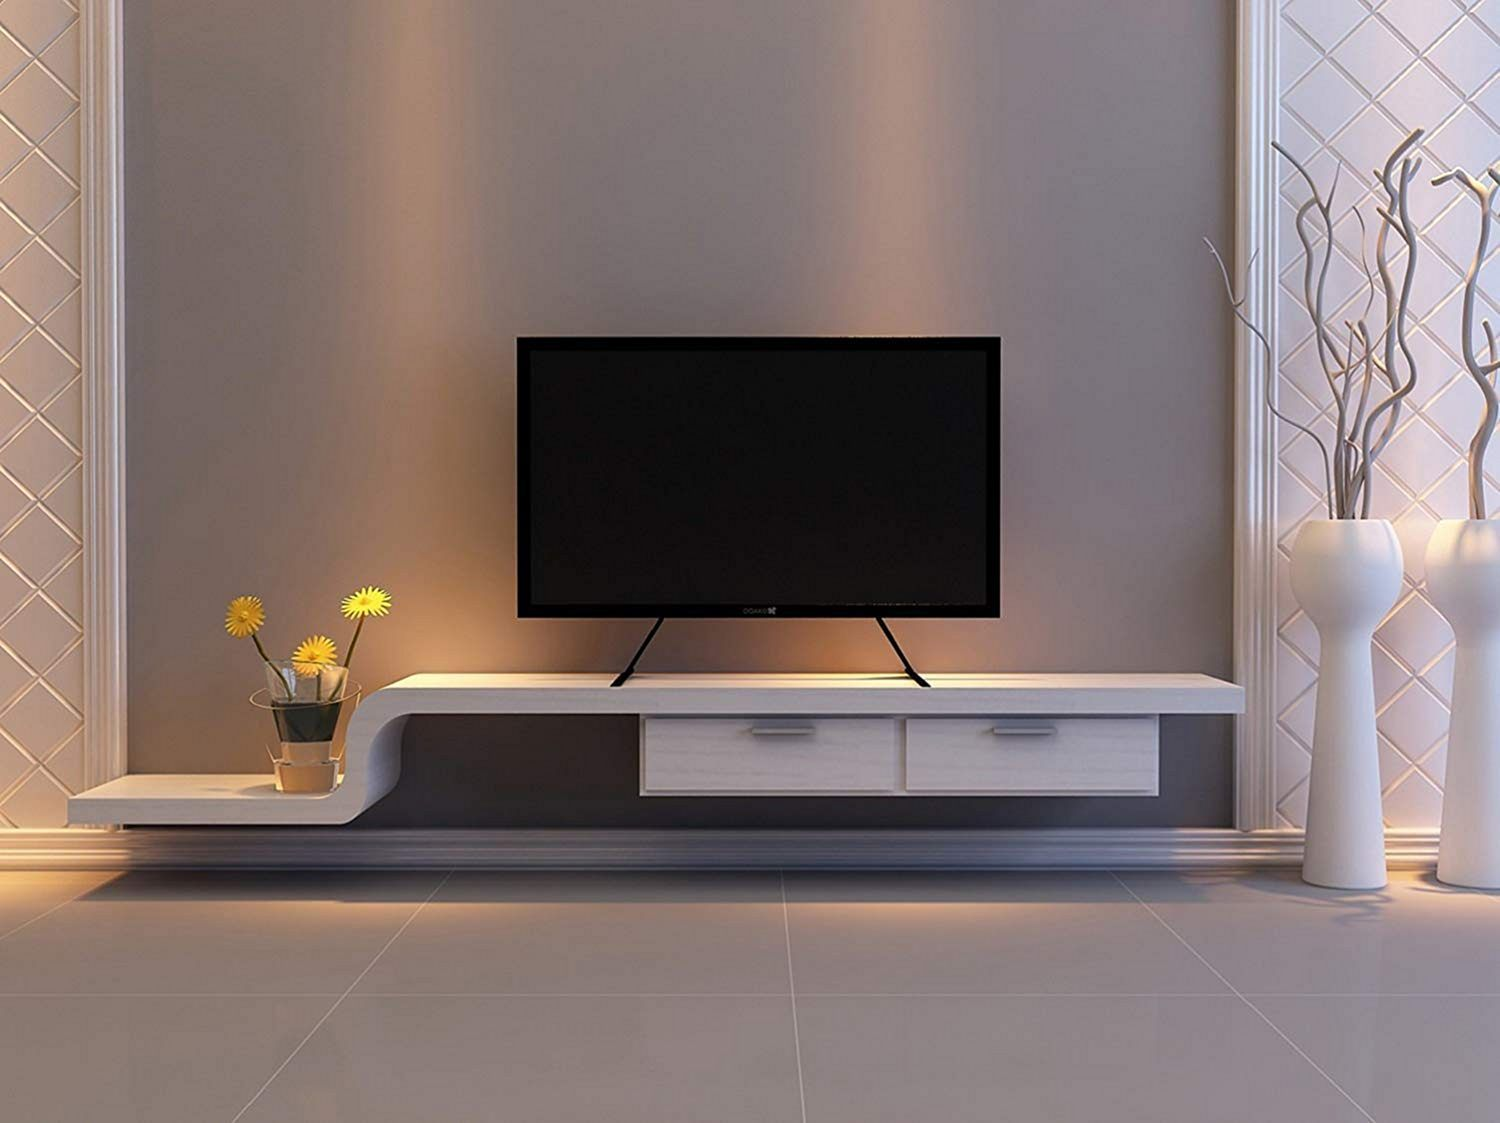 Awesome Tv Table Design Ideas Teracee Living Room Tv Unit Designs Tv Room Design Living Room Tv